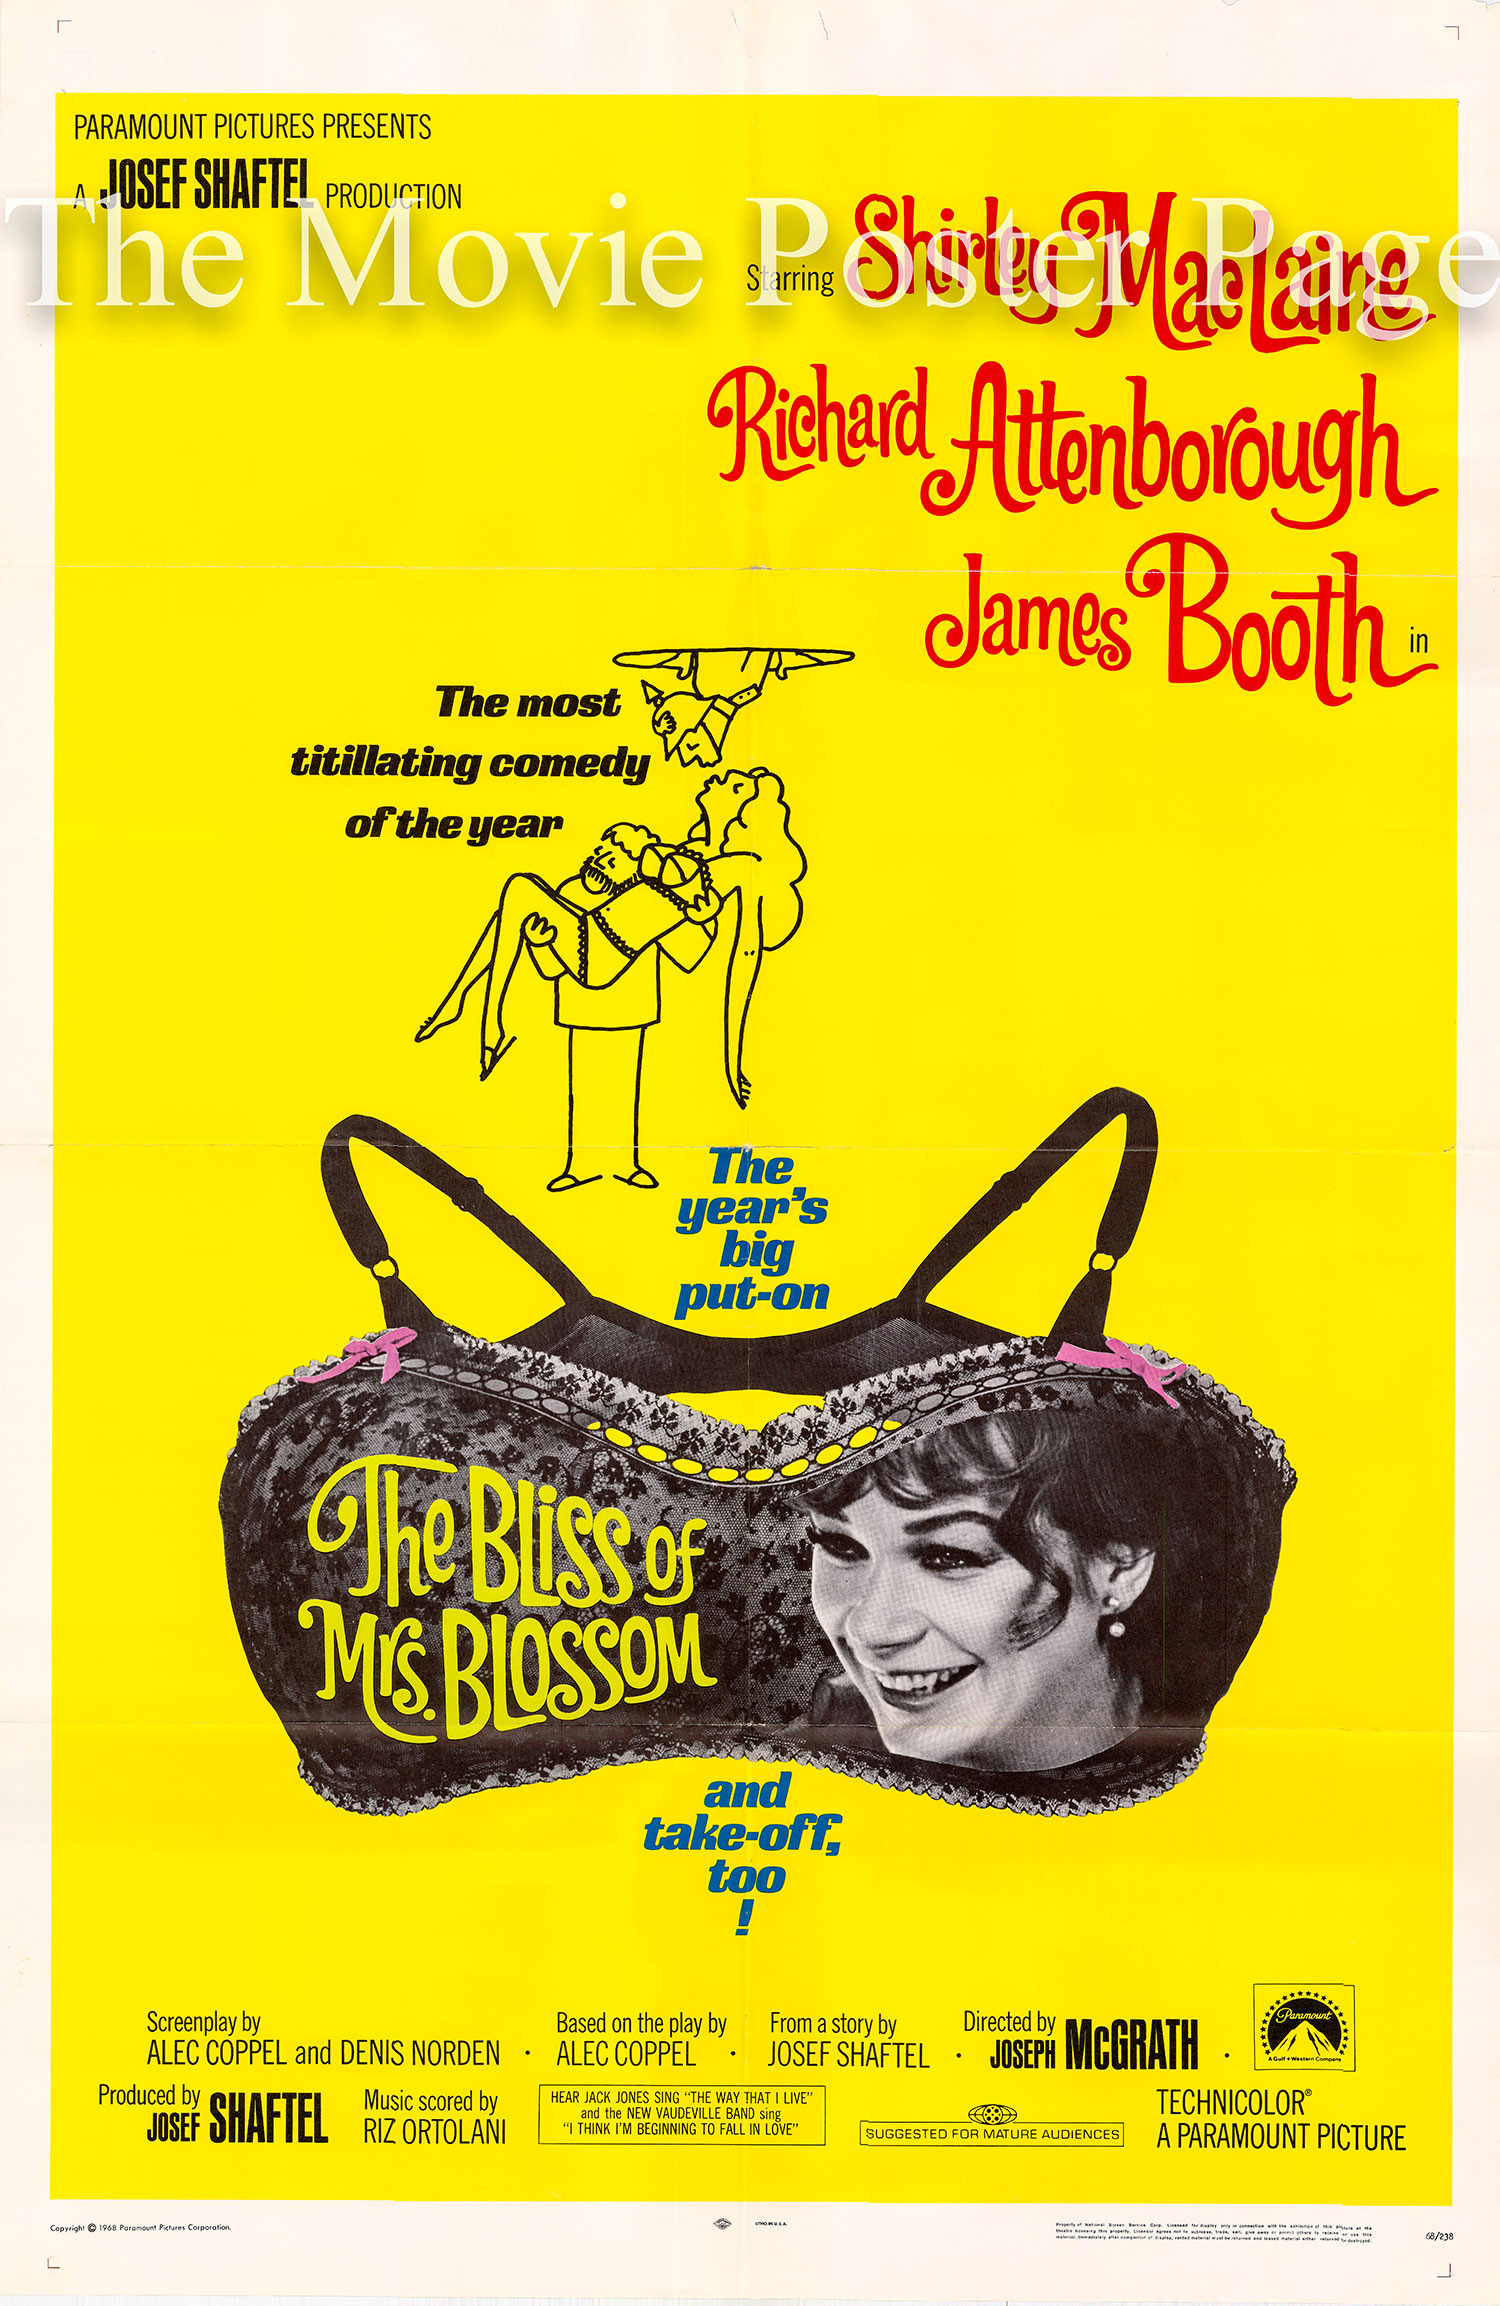 Pictured is a US one-sheet promotional poster for the 1968 Joseph McGrath film The Bliss of Mrs. Blossom starring Shirley MacClaine as Harriet Blossom.